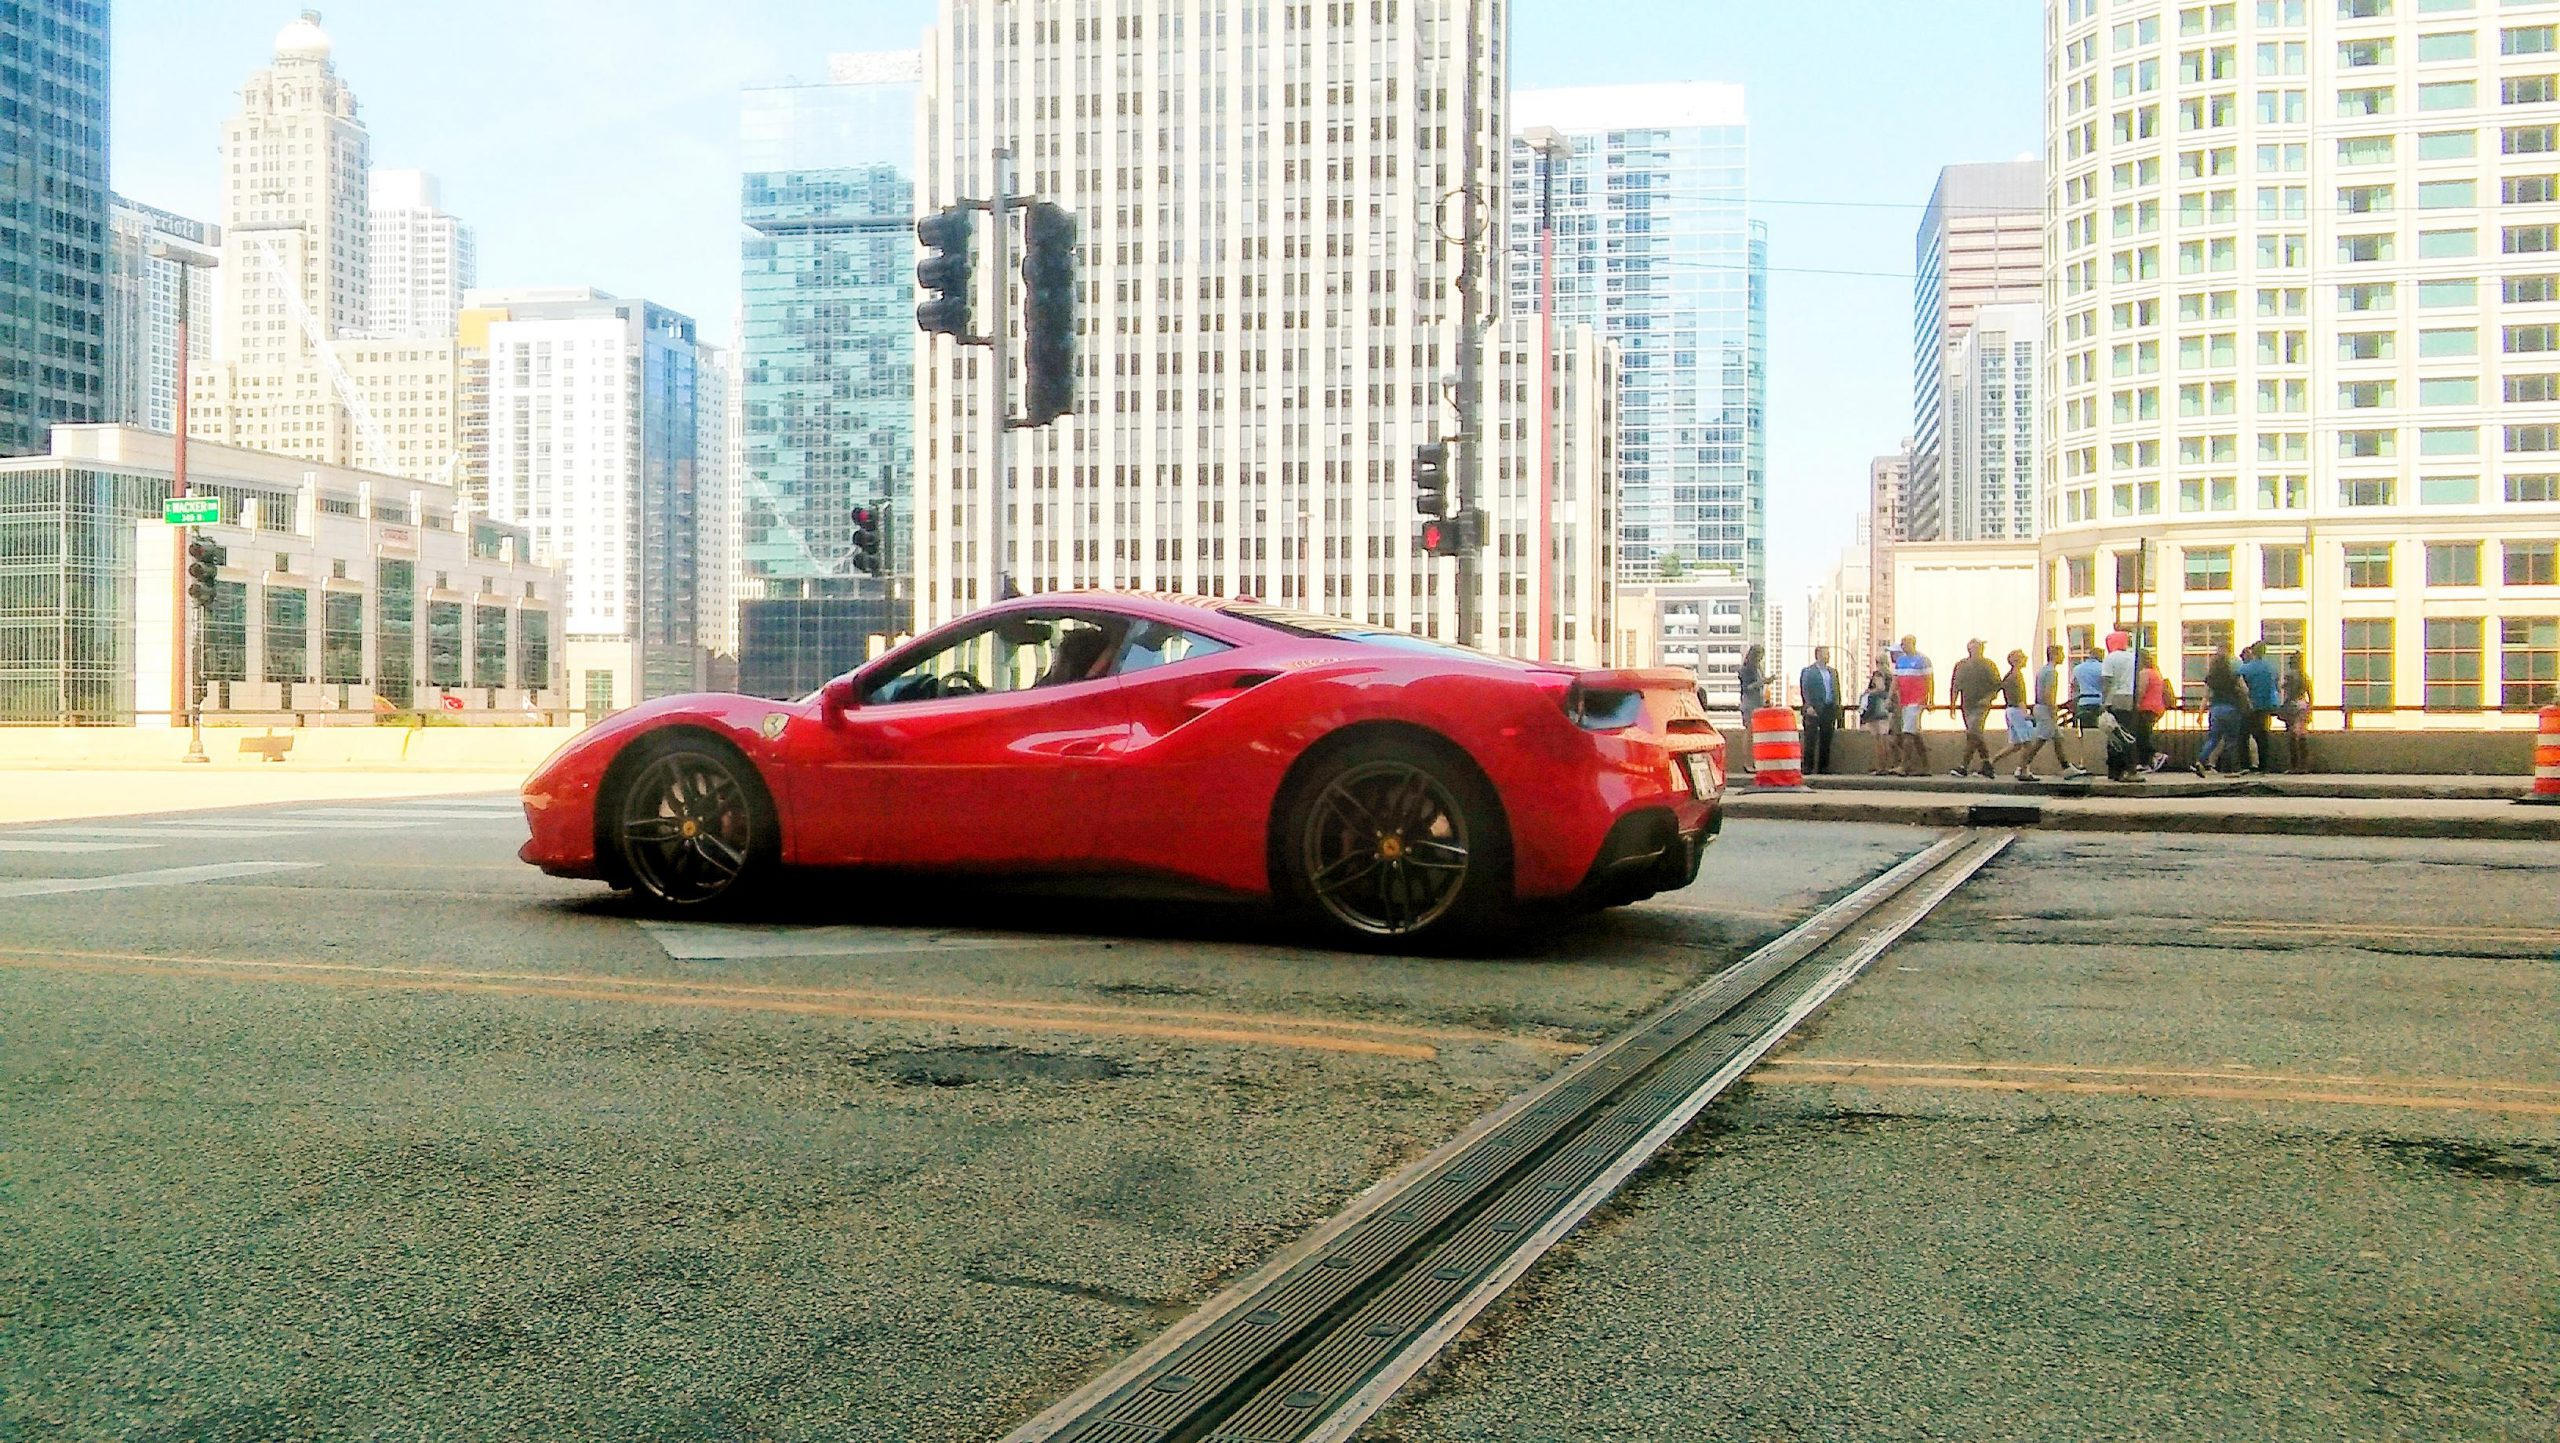 Red Ferrari 488 in Chicago, Illinois